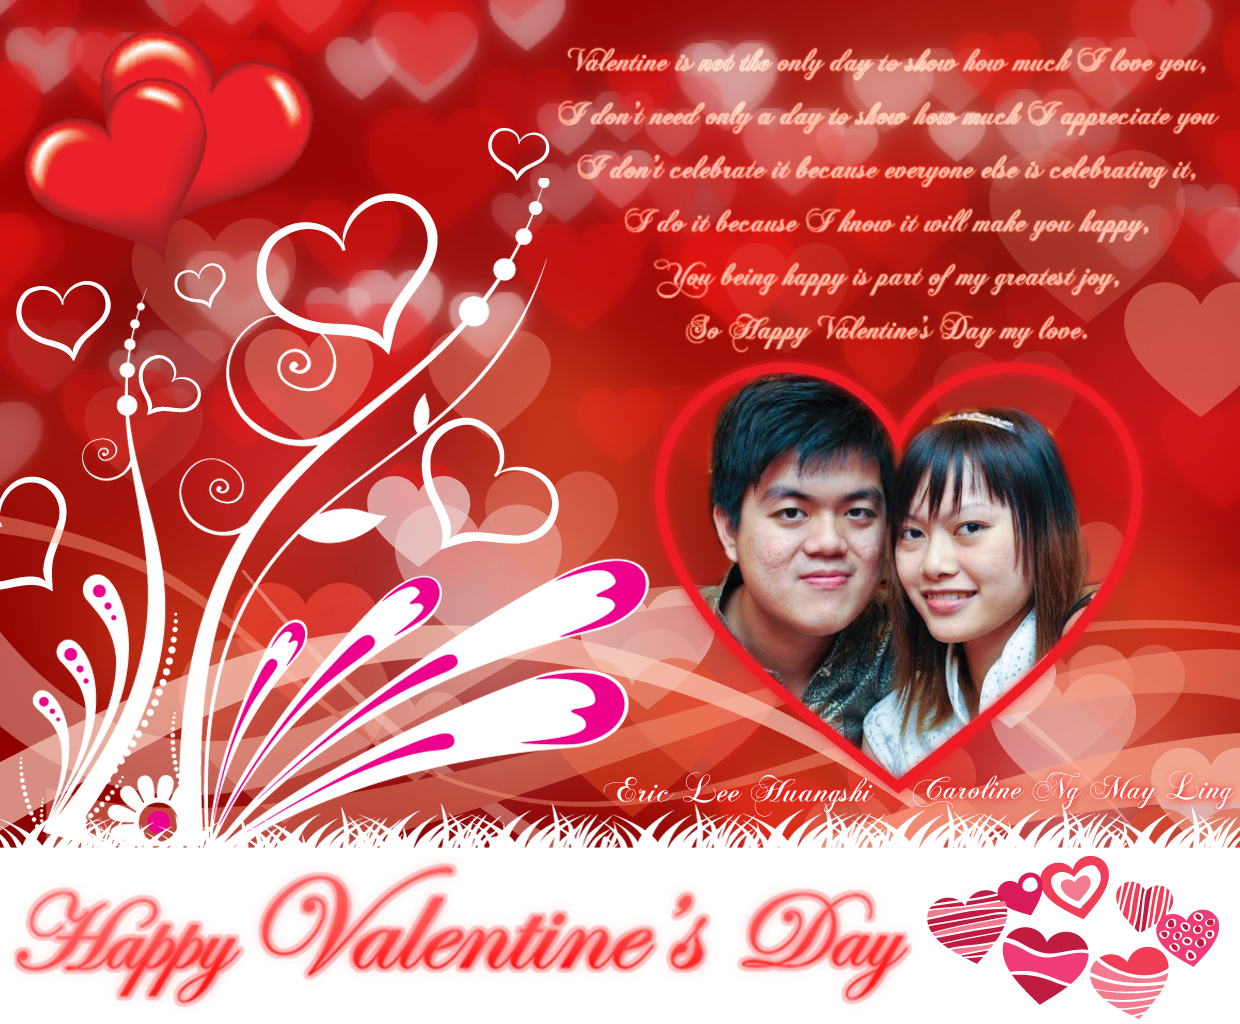 5hd happy valentines day 2014 greetings collection with love quotes with love quotes customized for whatsapp messenger for android to send to whatsapp lovers or friends as happy valentines day 2014 greetings cards in hd kristyandbryce Image collections